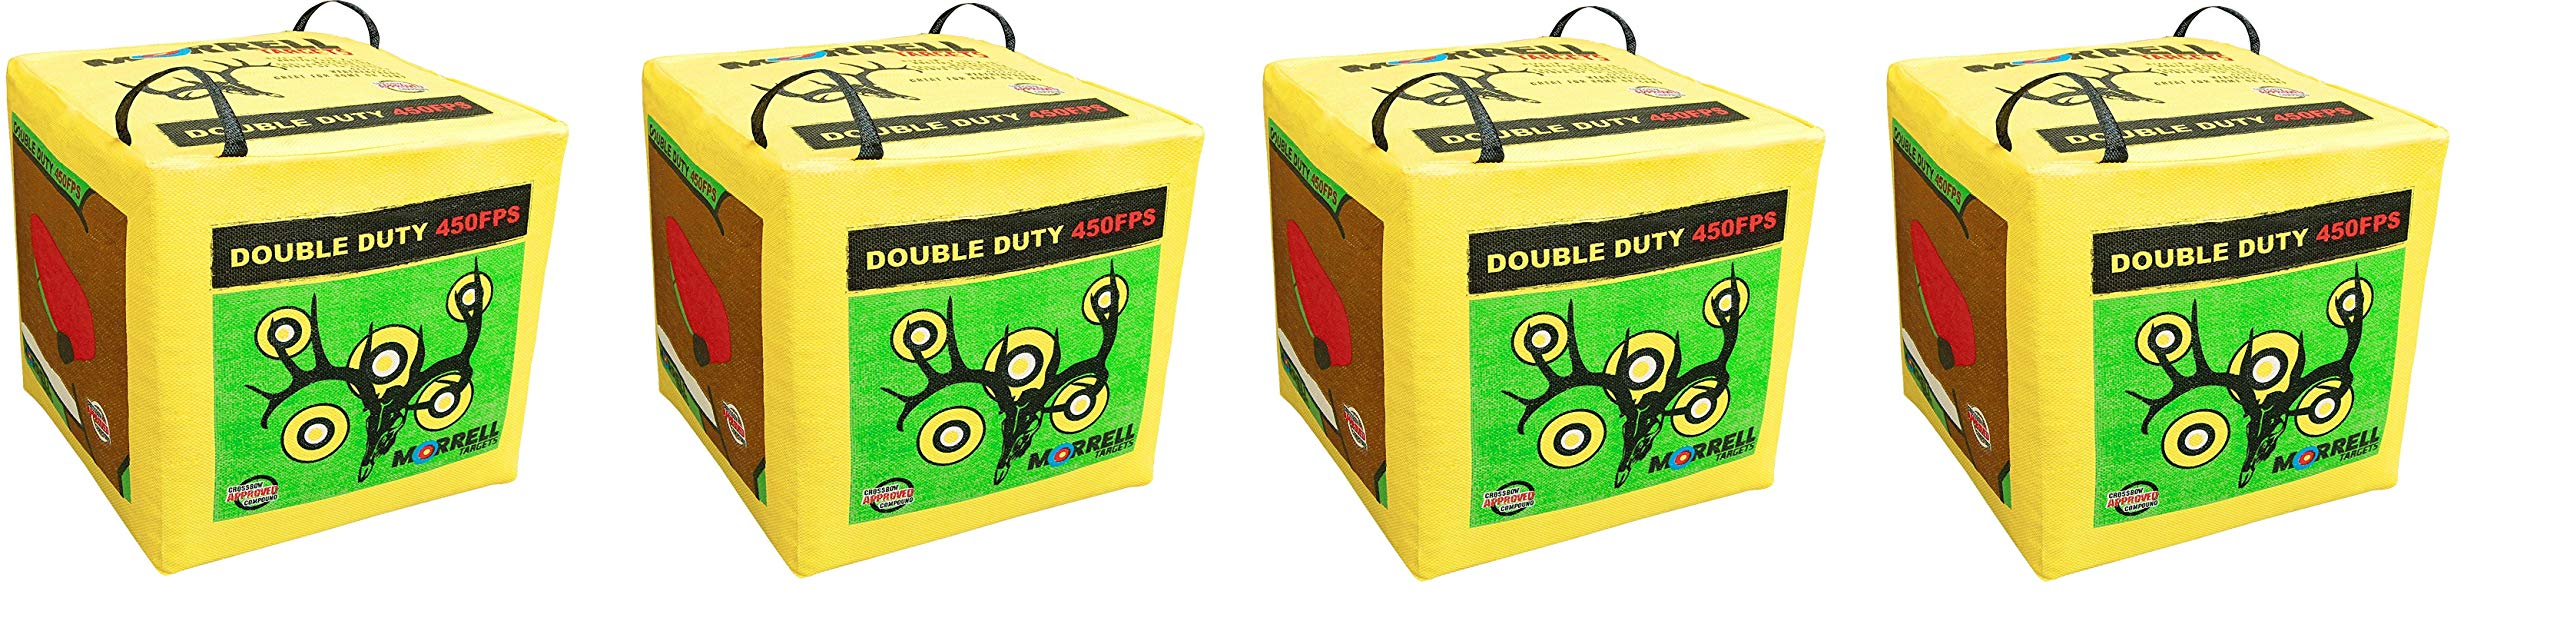 Morrell Double Duty 450FPS Field Point Bag Archery Target - for Crossbows, Compounds, Traditional Bows and Airbows (4-Pack) by Morrell